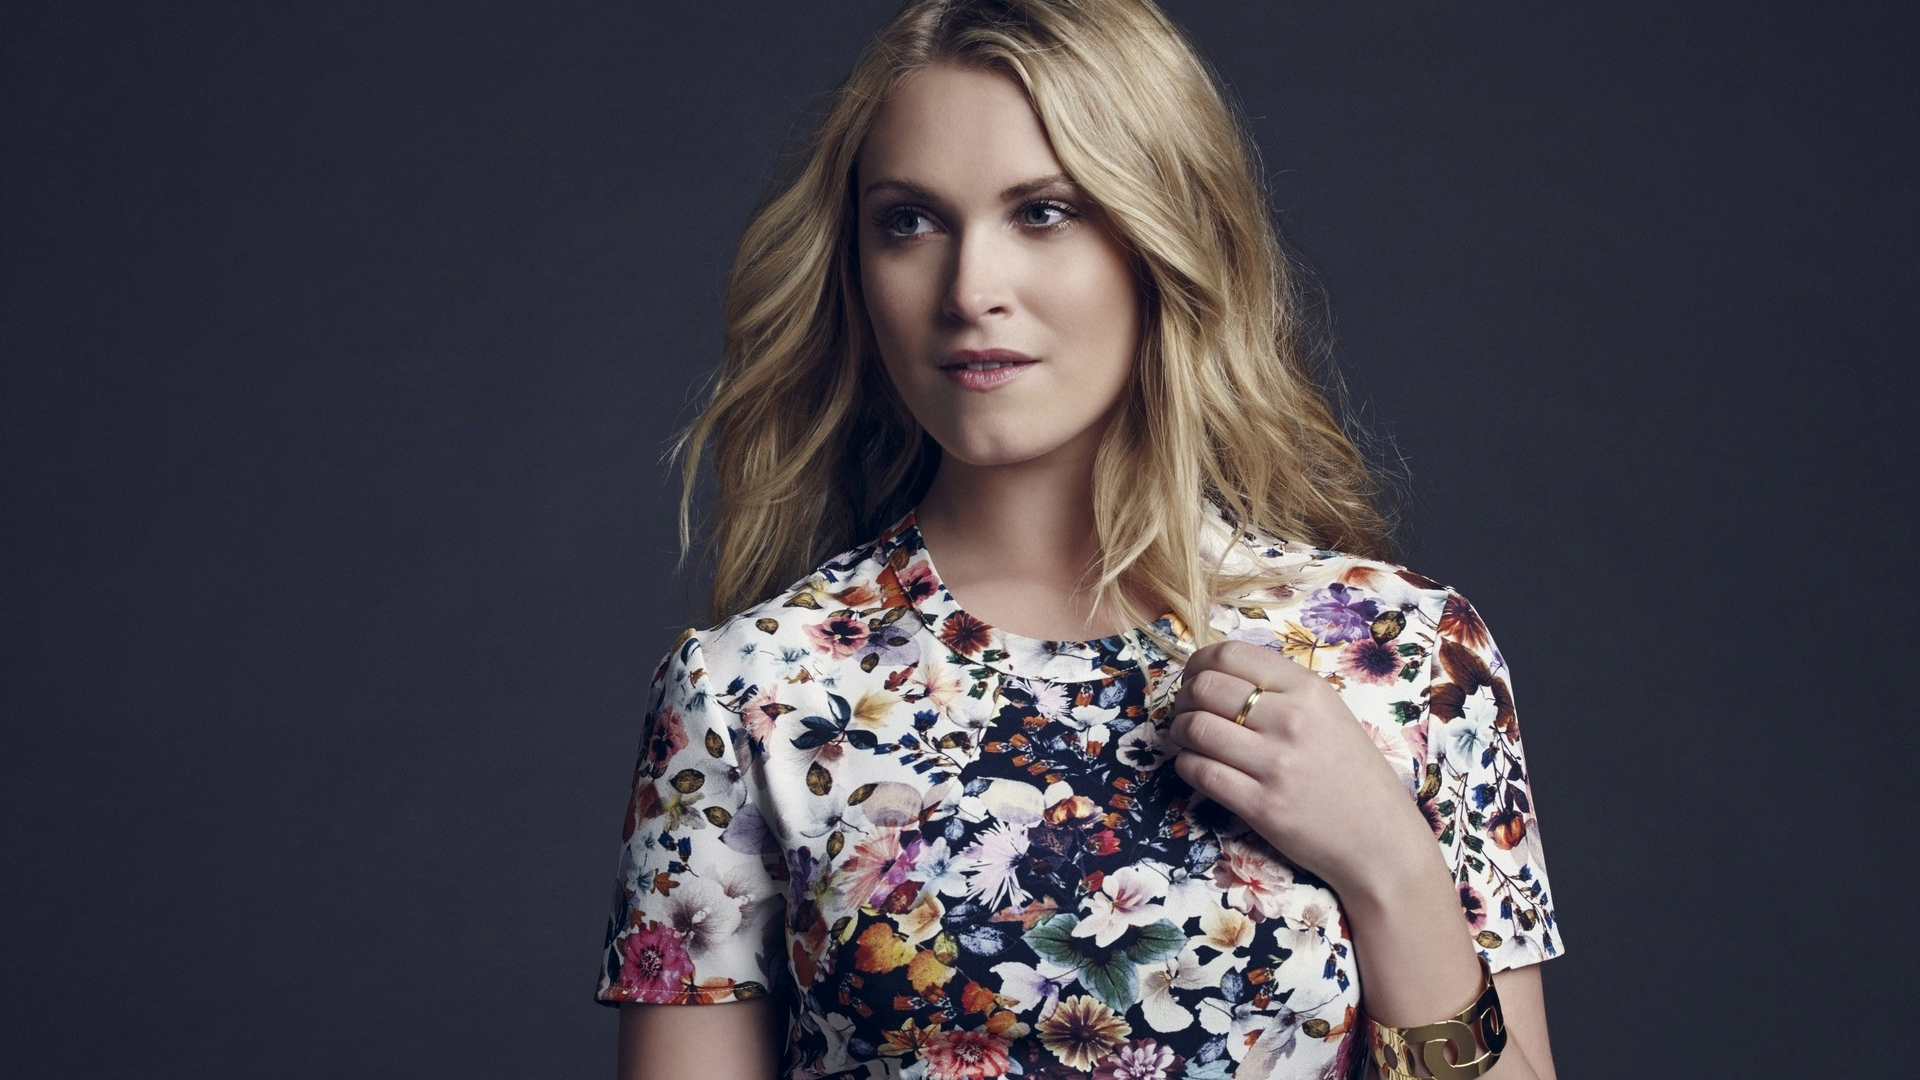 Eliza taylor in the november man 6